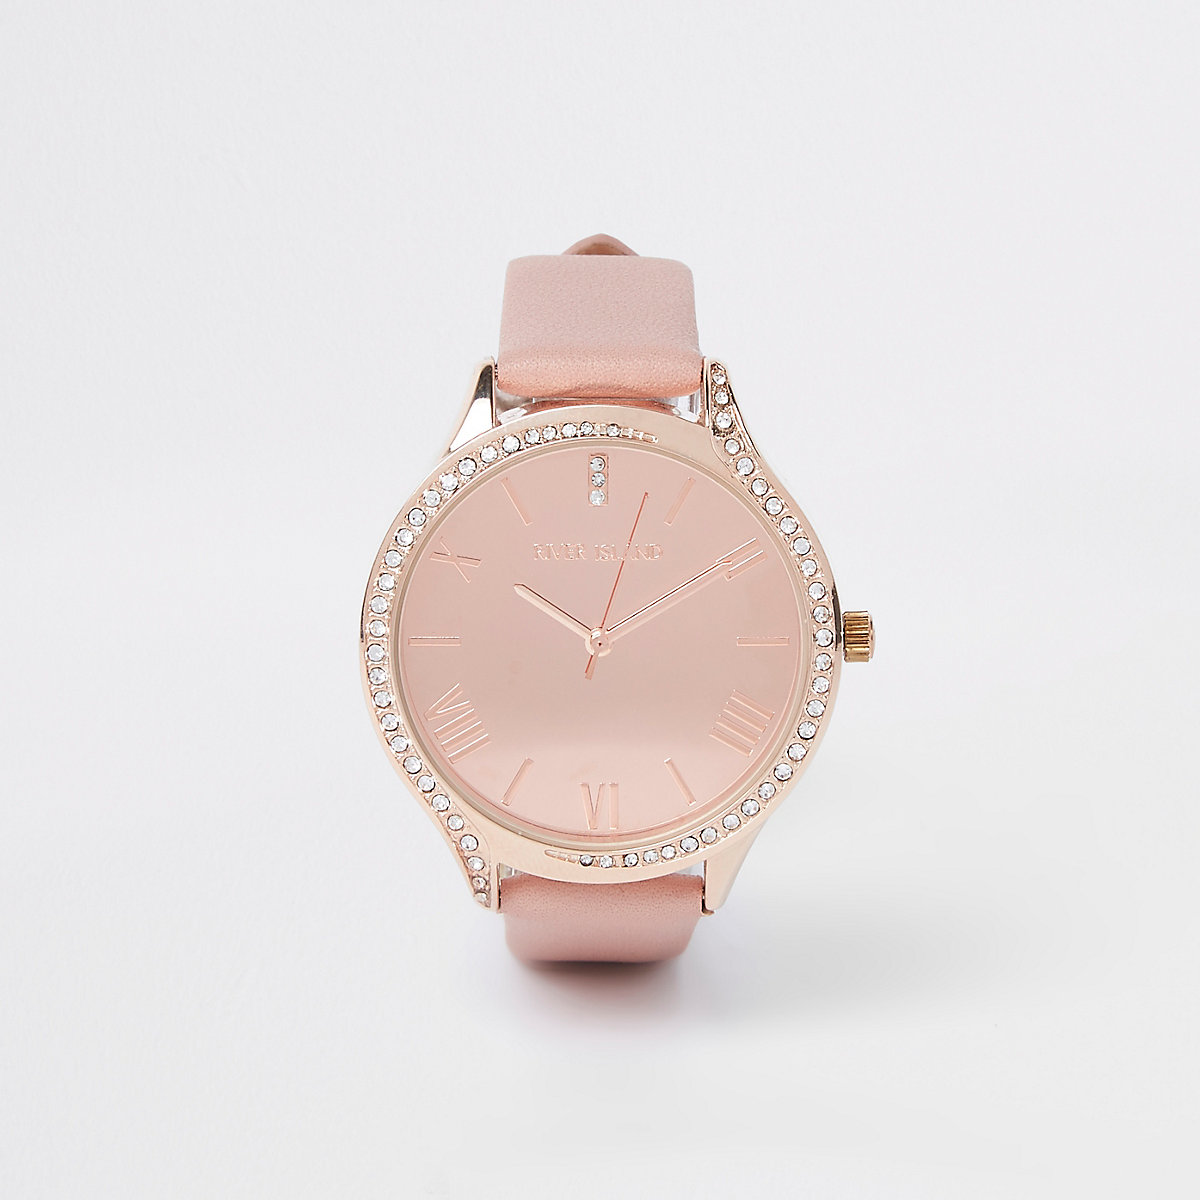 Pink rose gold tone diamante round face watch